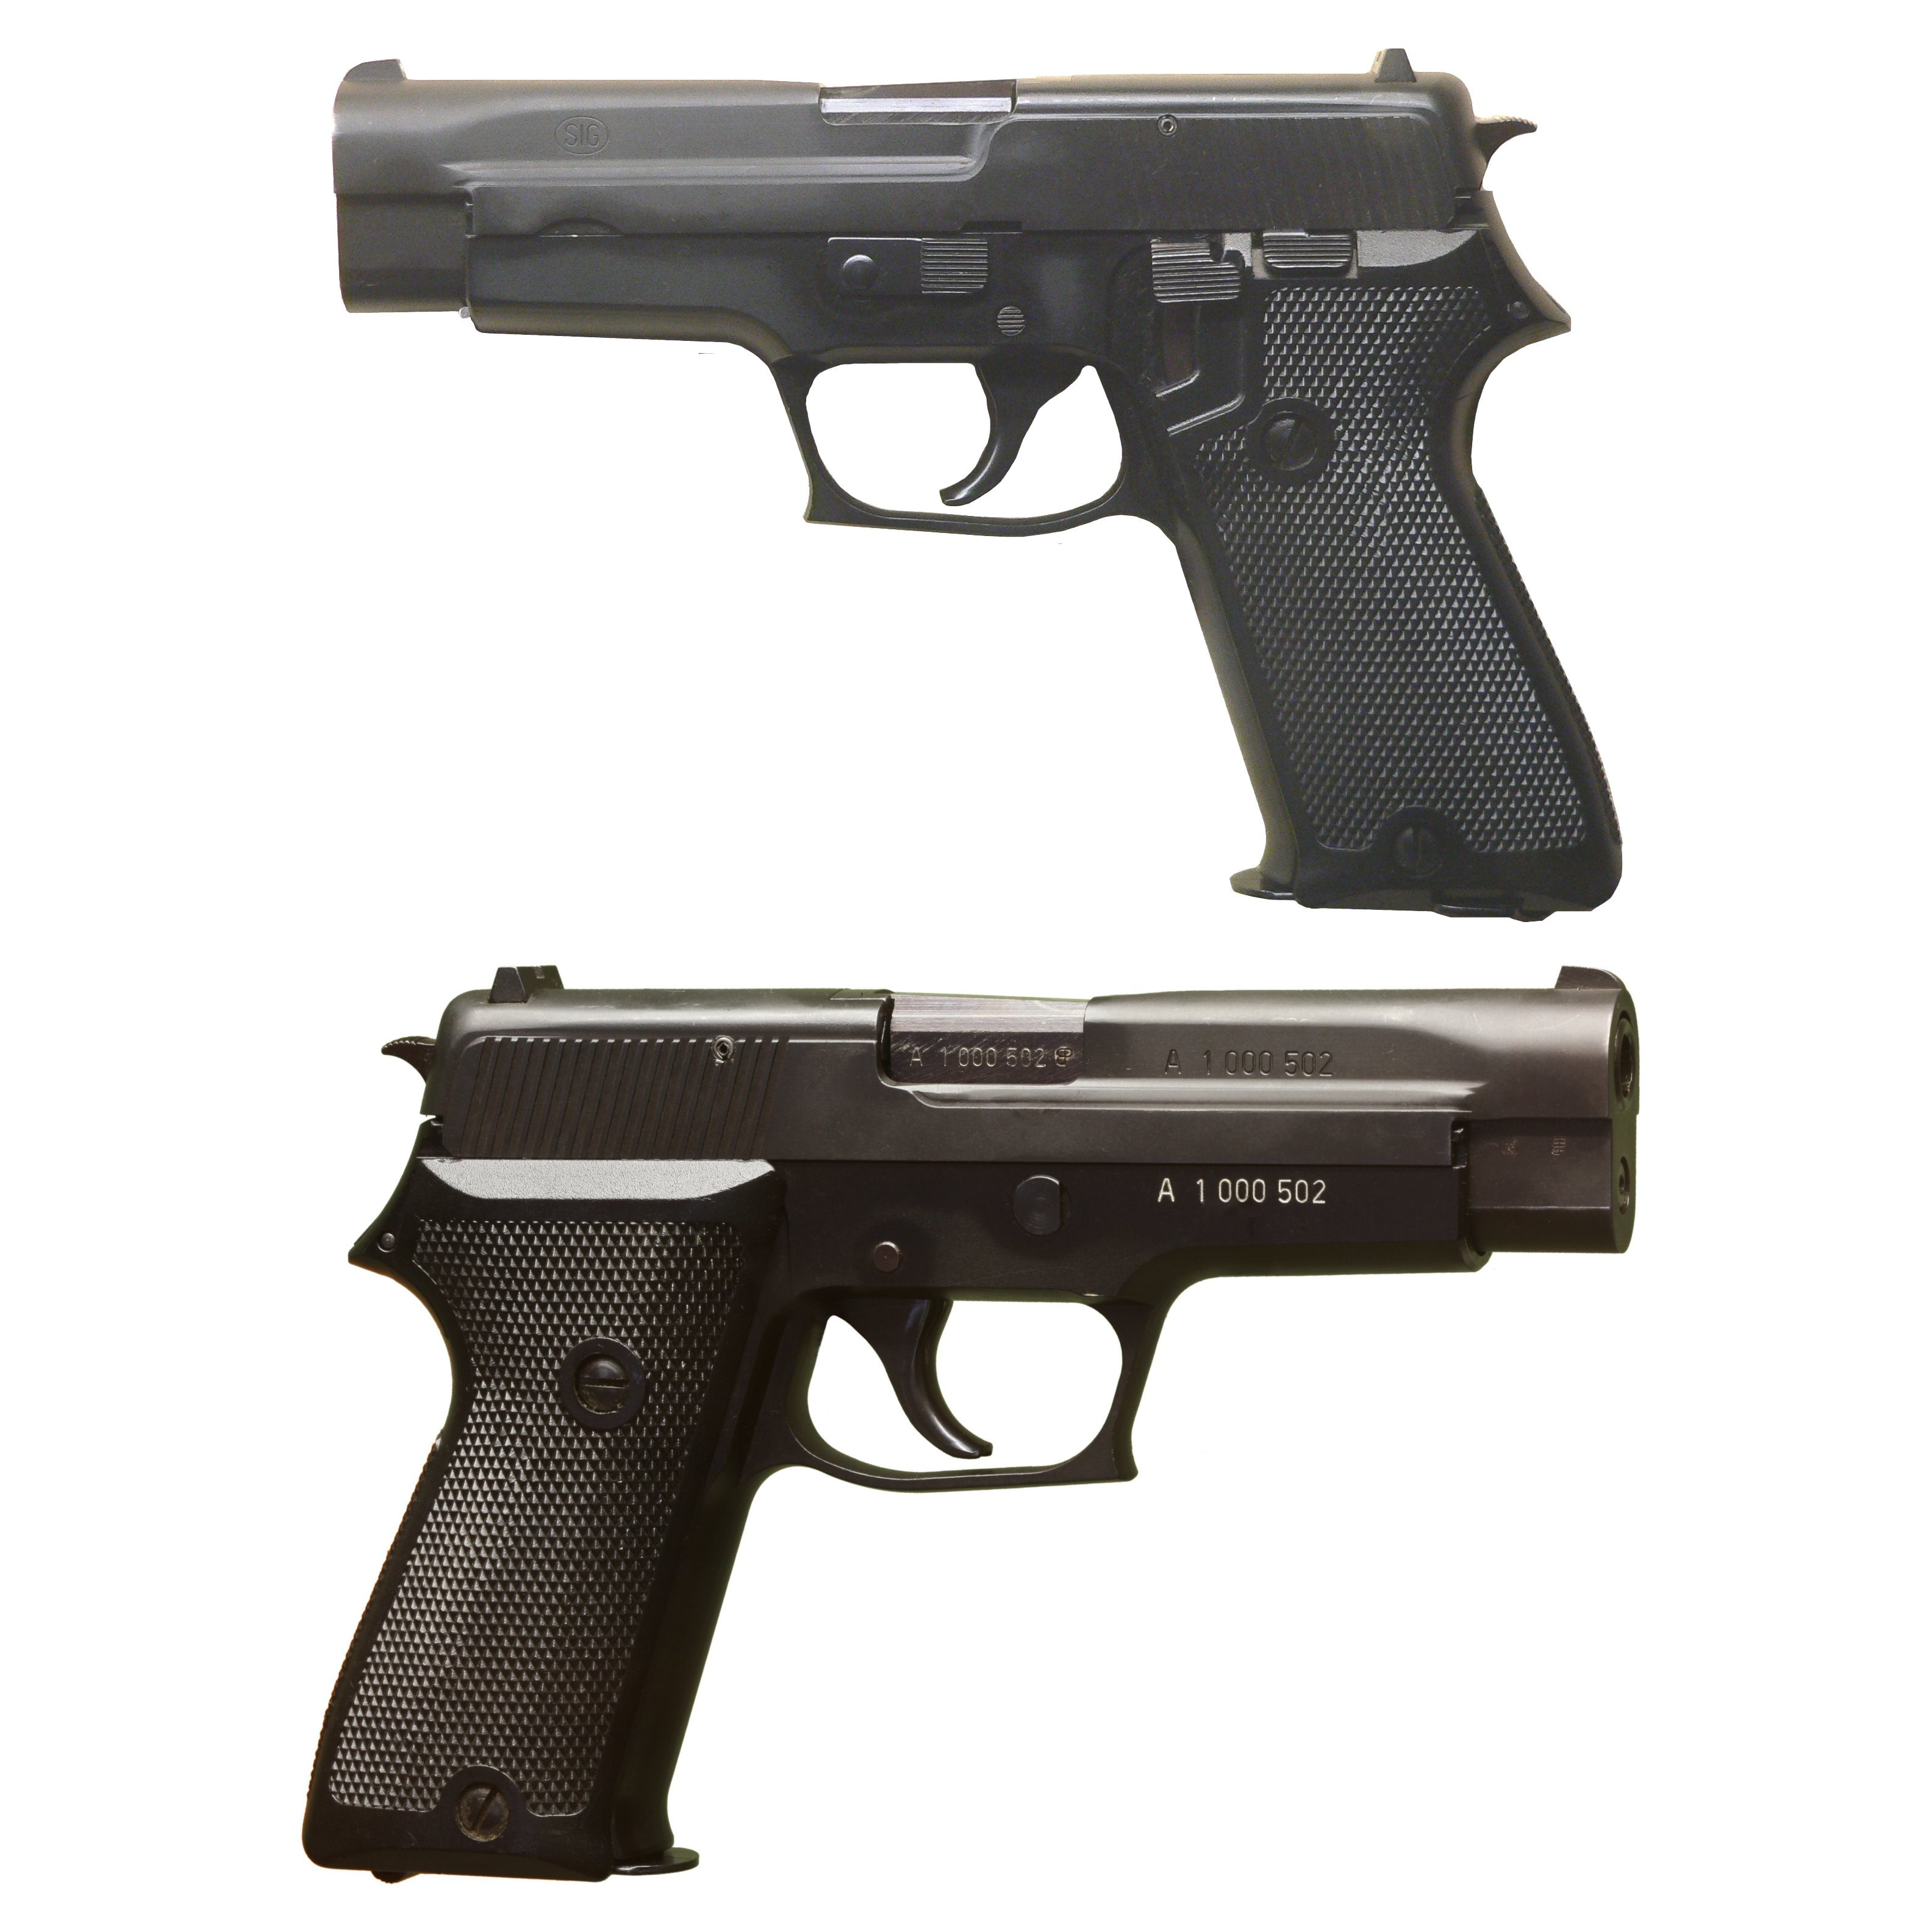 Sig Sauer P220 Wikipedia Glock 17 Parts Diagram Related Keywords Suggestions